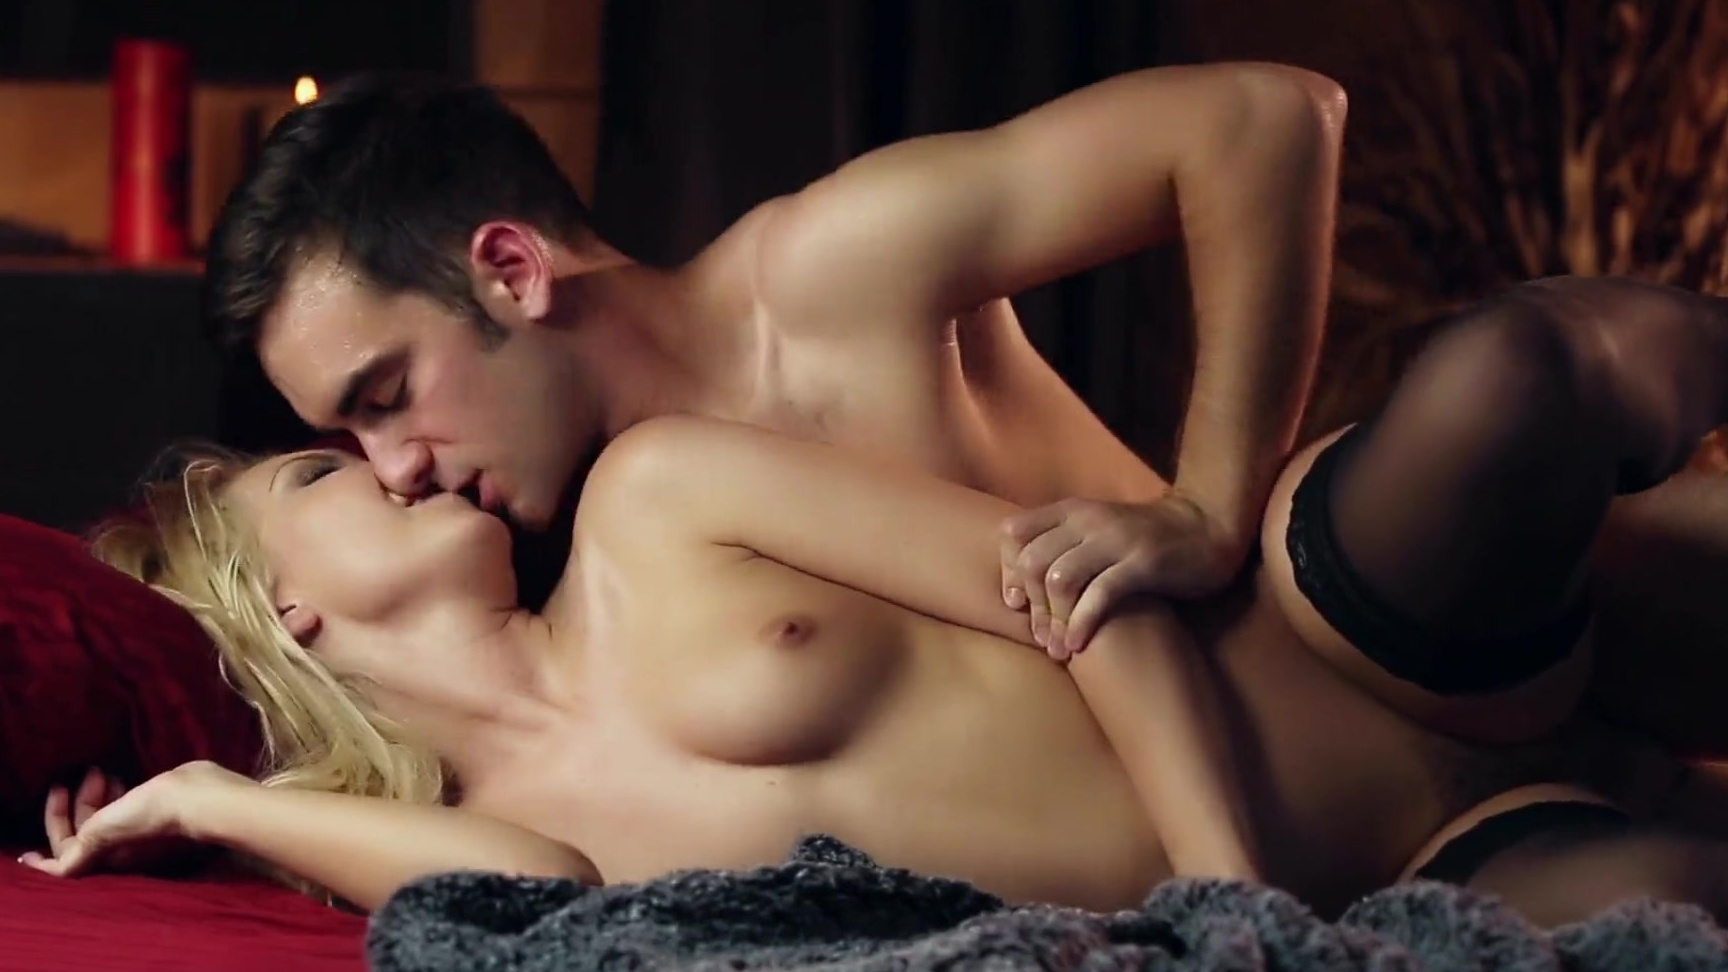 Angelica Bell Nude aaliyah love having passionate sex with a mouthful of cum